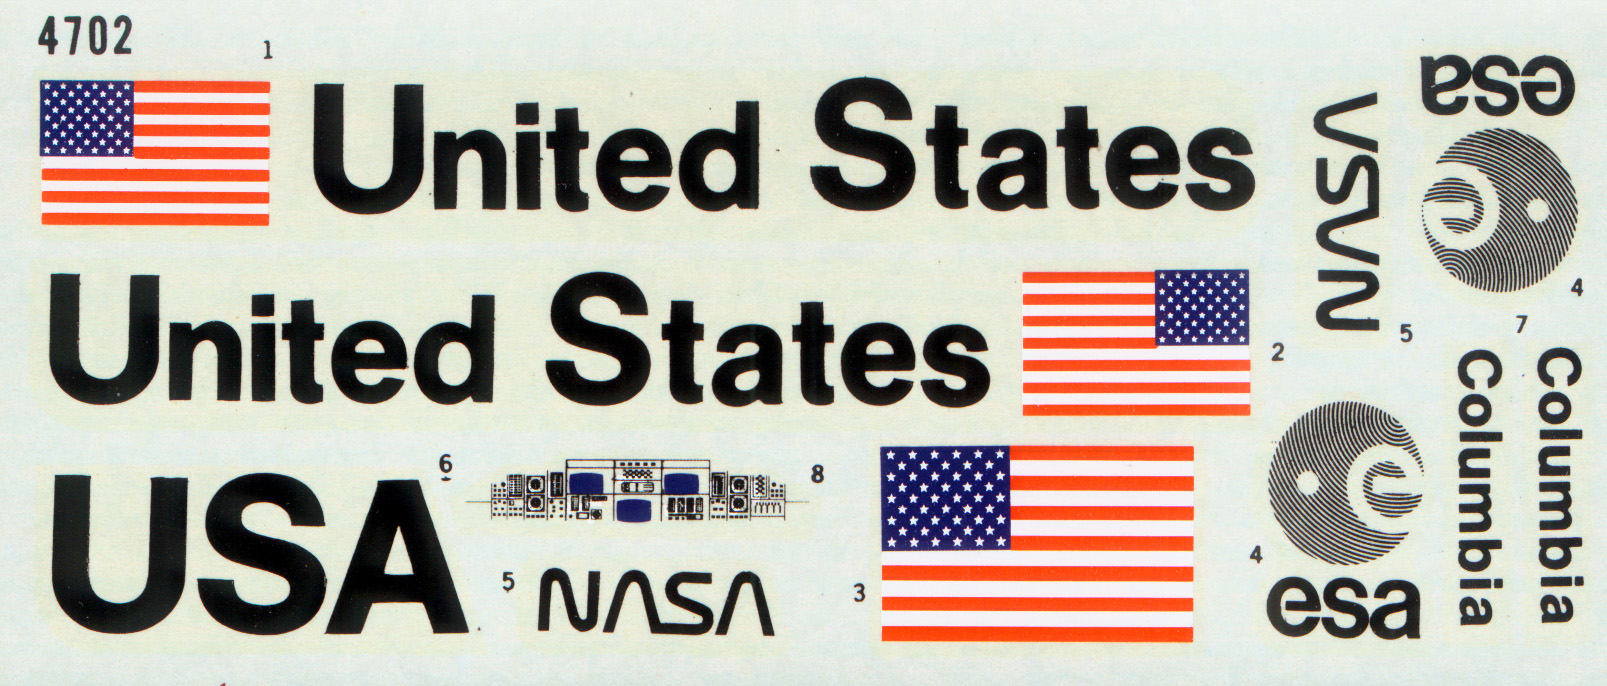 Space shuttle model decals pics about space for Space decals